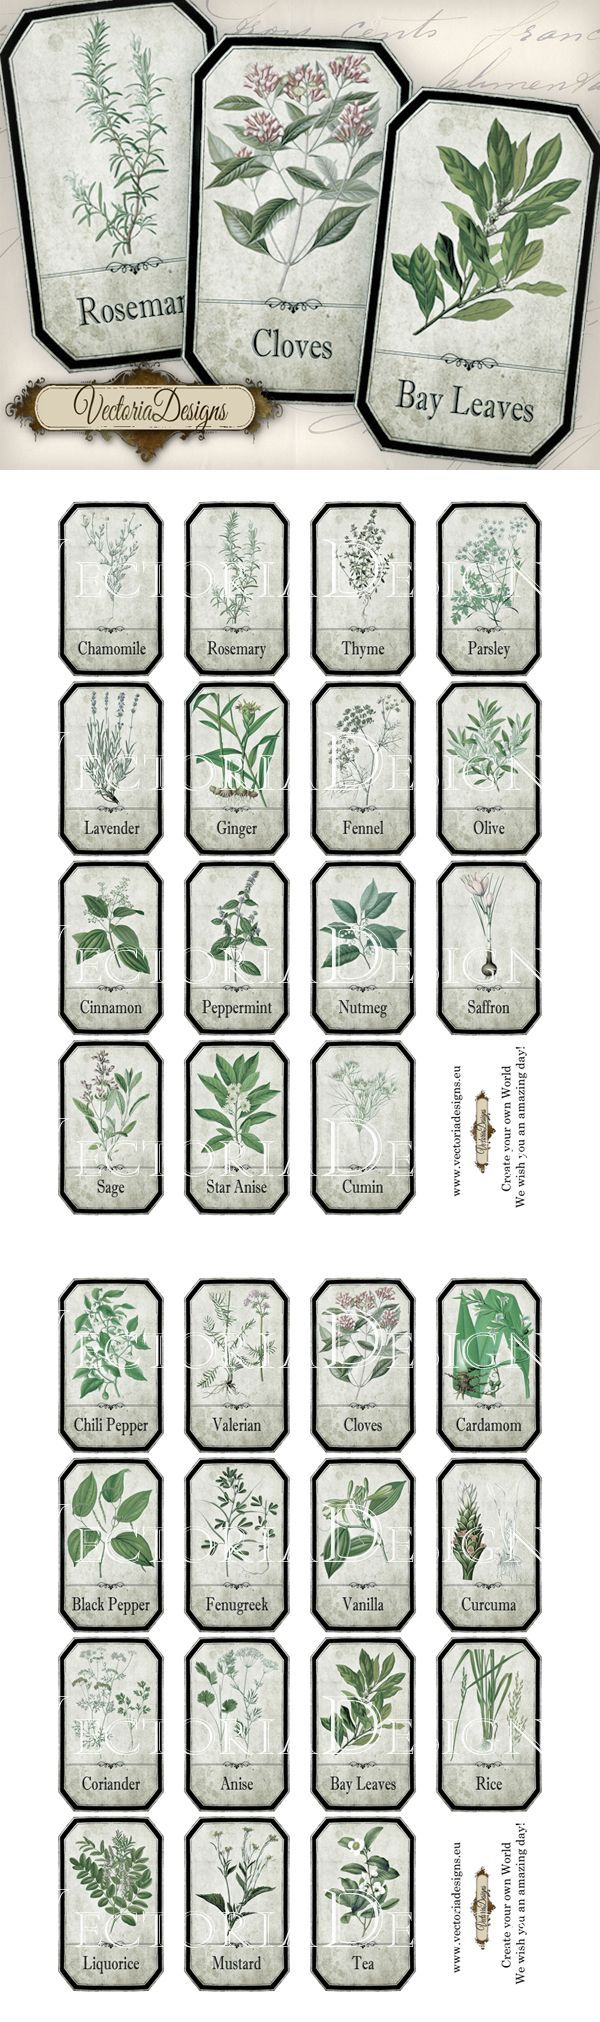 Printable Shabby Herbal Labels by VectoriaDesigns.deviantart.com on @deviantART | herbology, herbalism, healing plants, herbal medicine